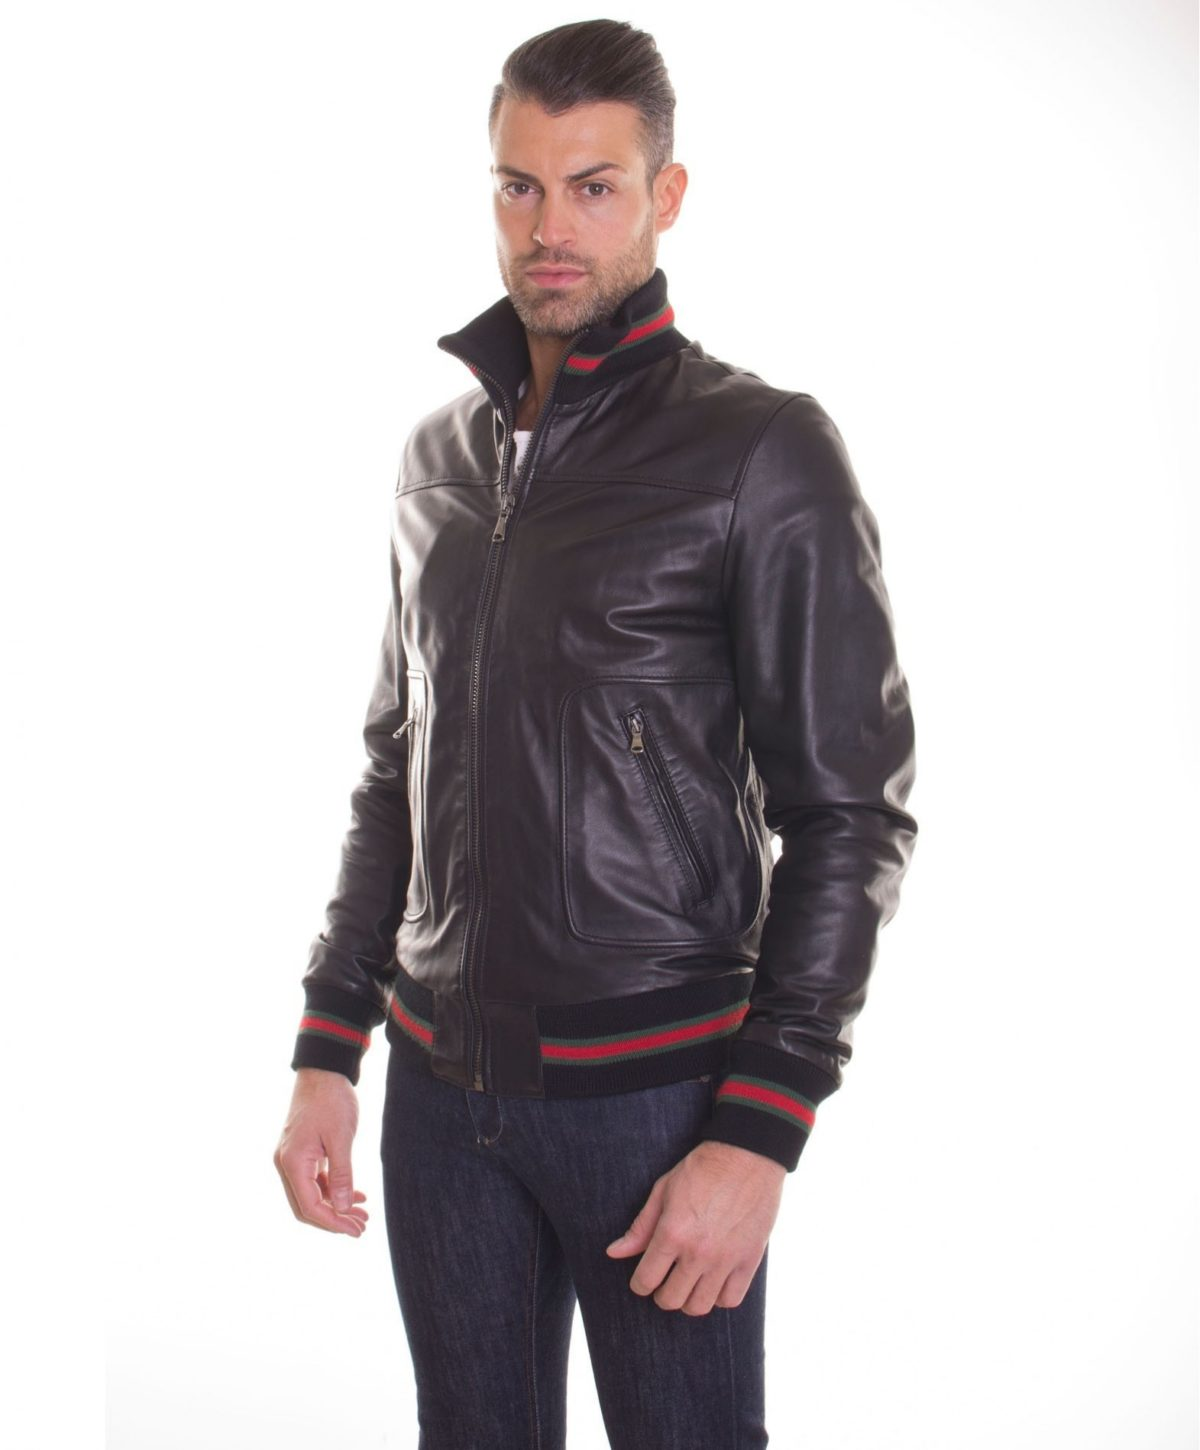 men-s-leather-jacket-genuine-soft-leather-style-bomber-bicolor-wool-cuffs-and-bottom-central-zip-black-color-mod-alex (2)